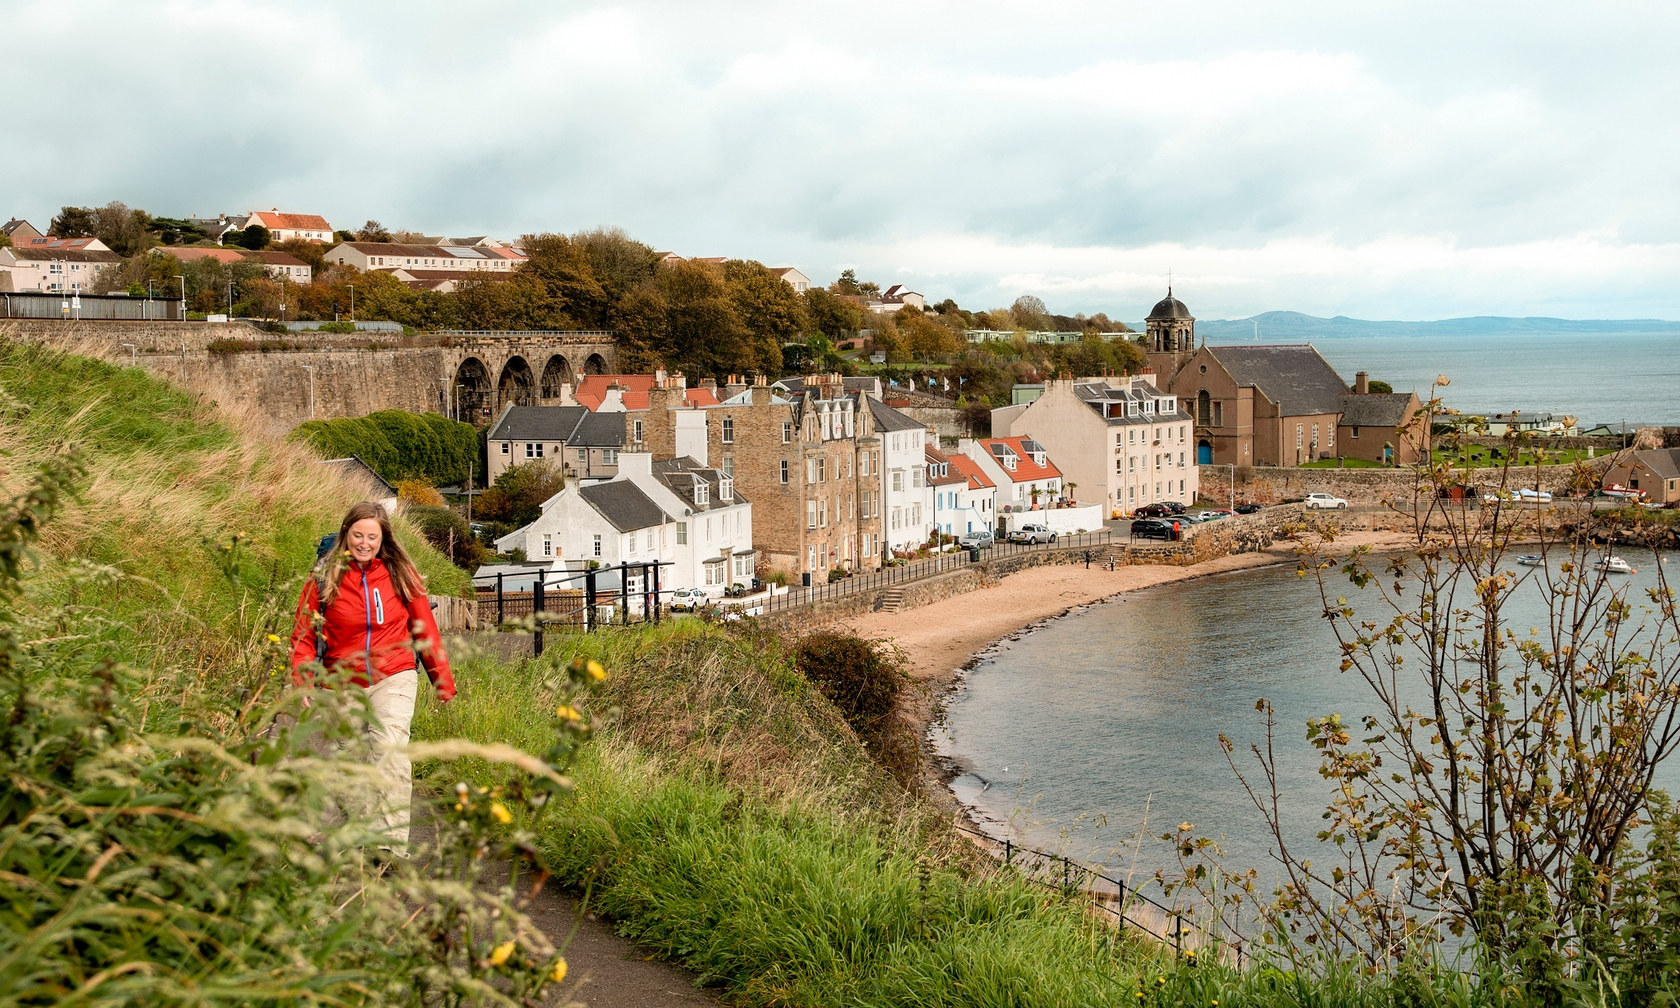 Holiday rentals in Fife